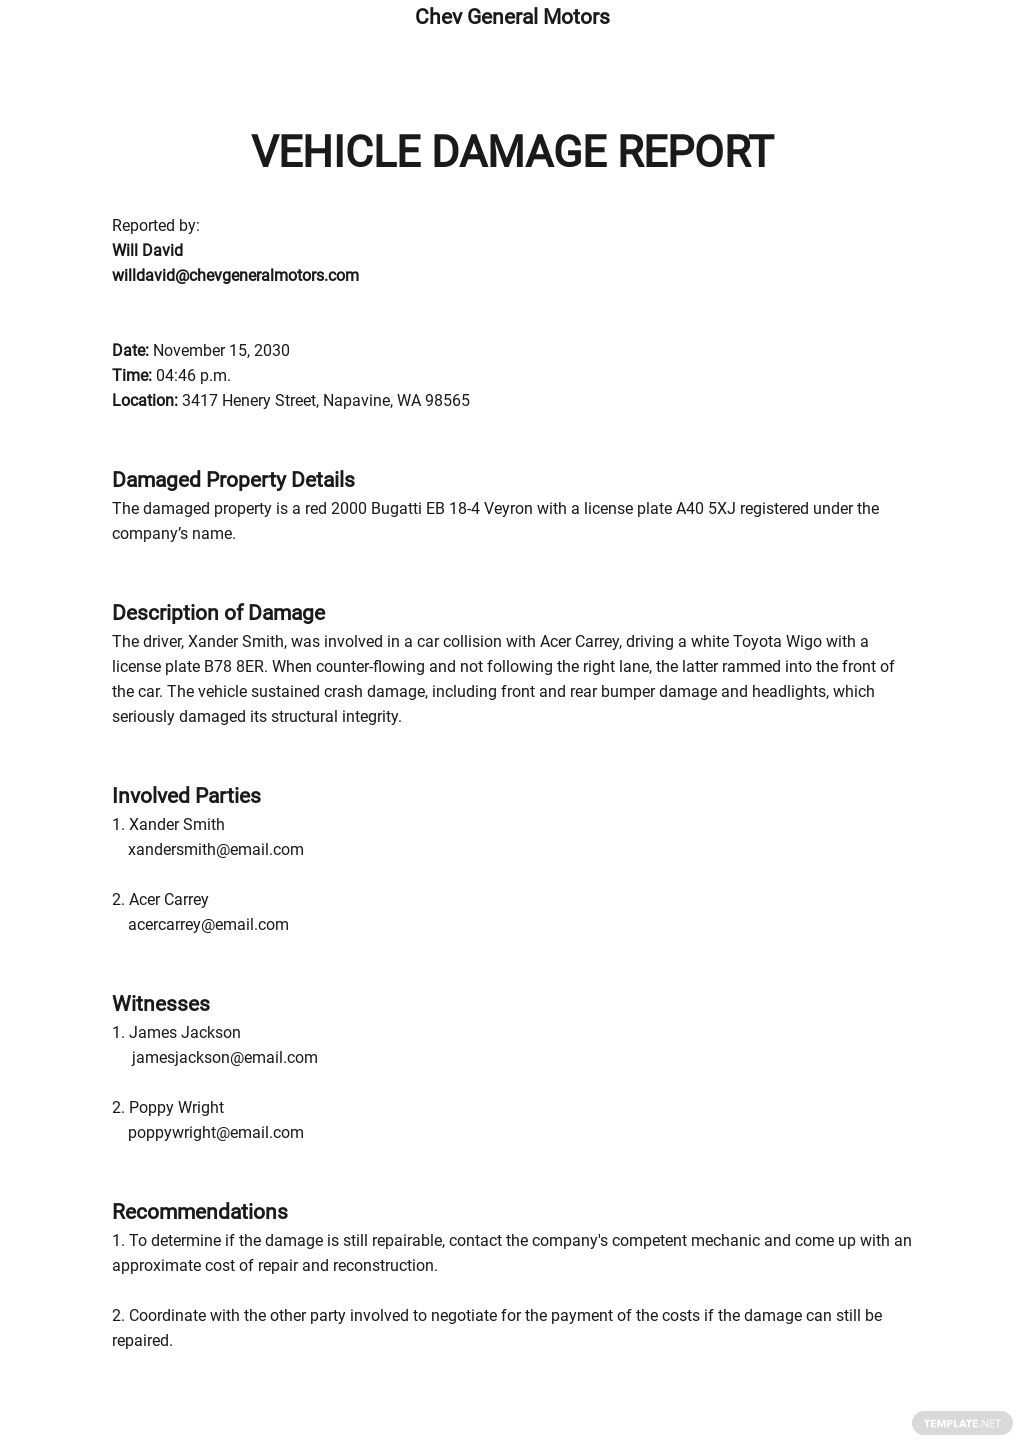 Damage Report for Insurance Template